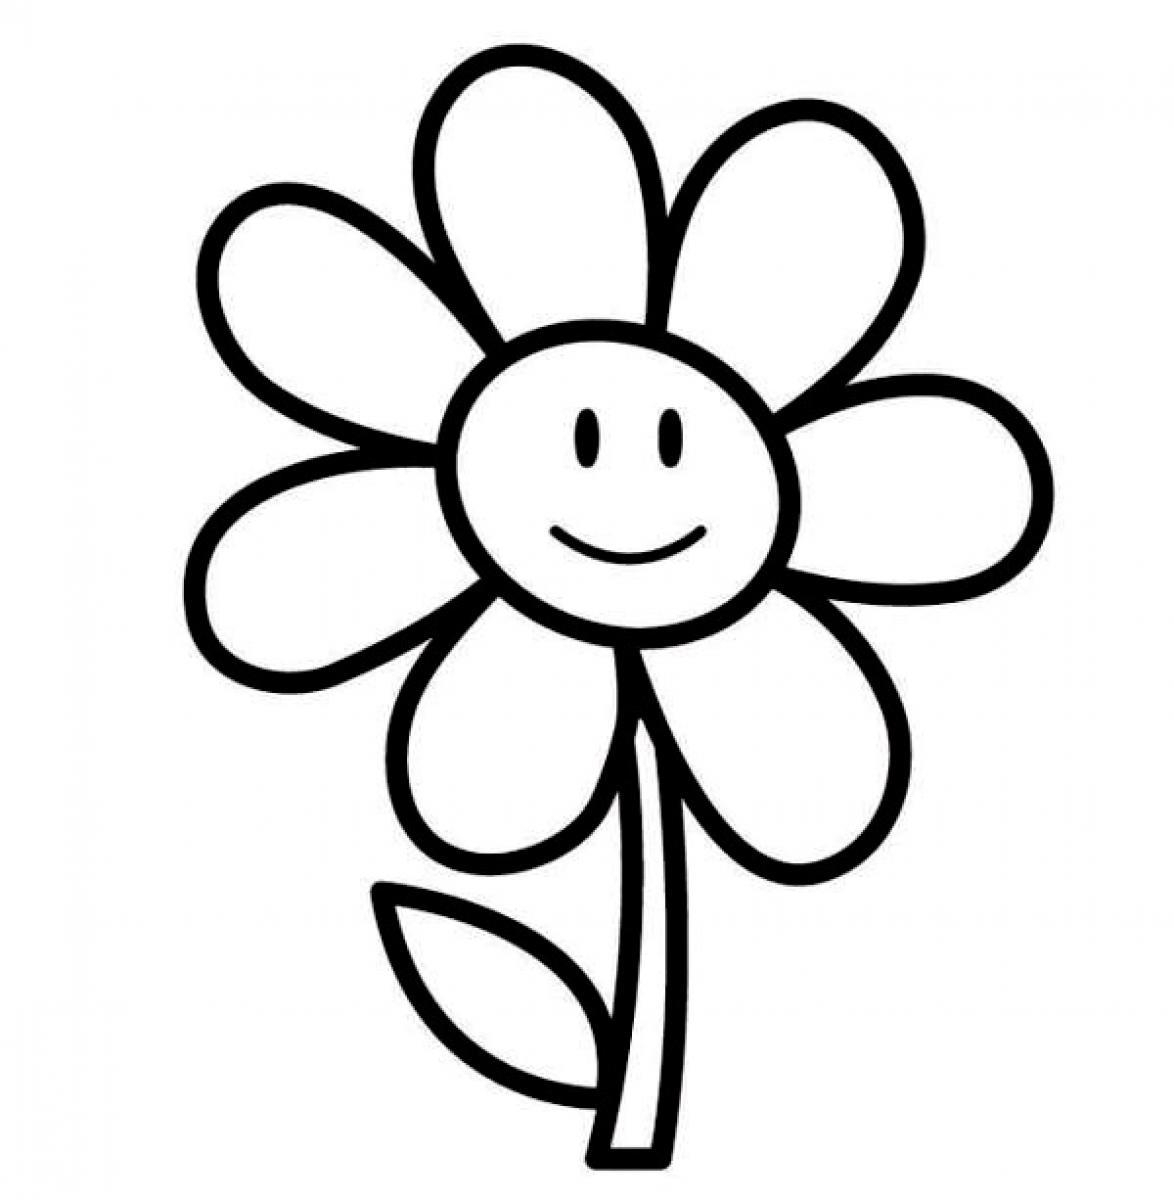 1174x1200 Easy Cartoon Flower Drawings And Free Pictures Of Flower Drawings